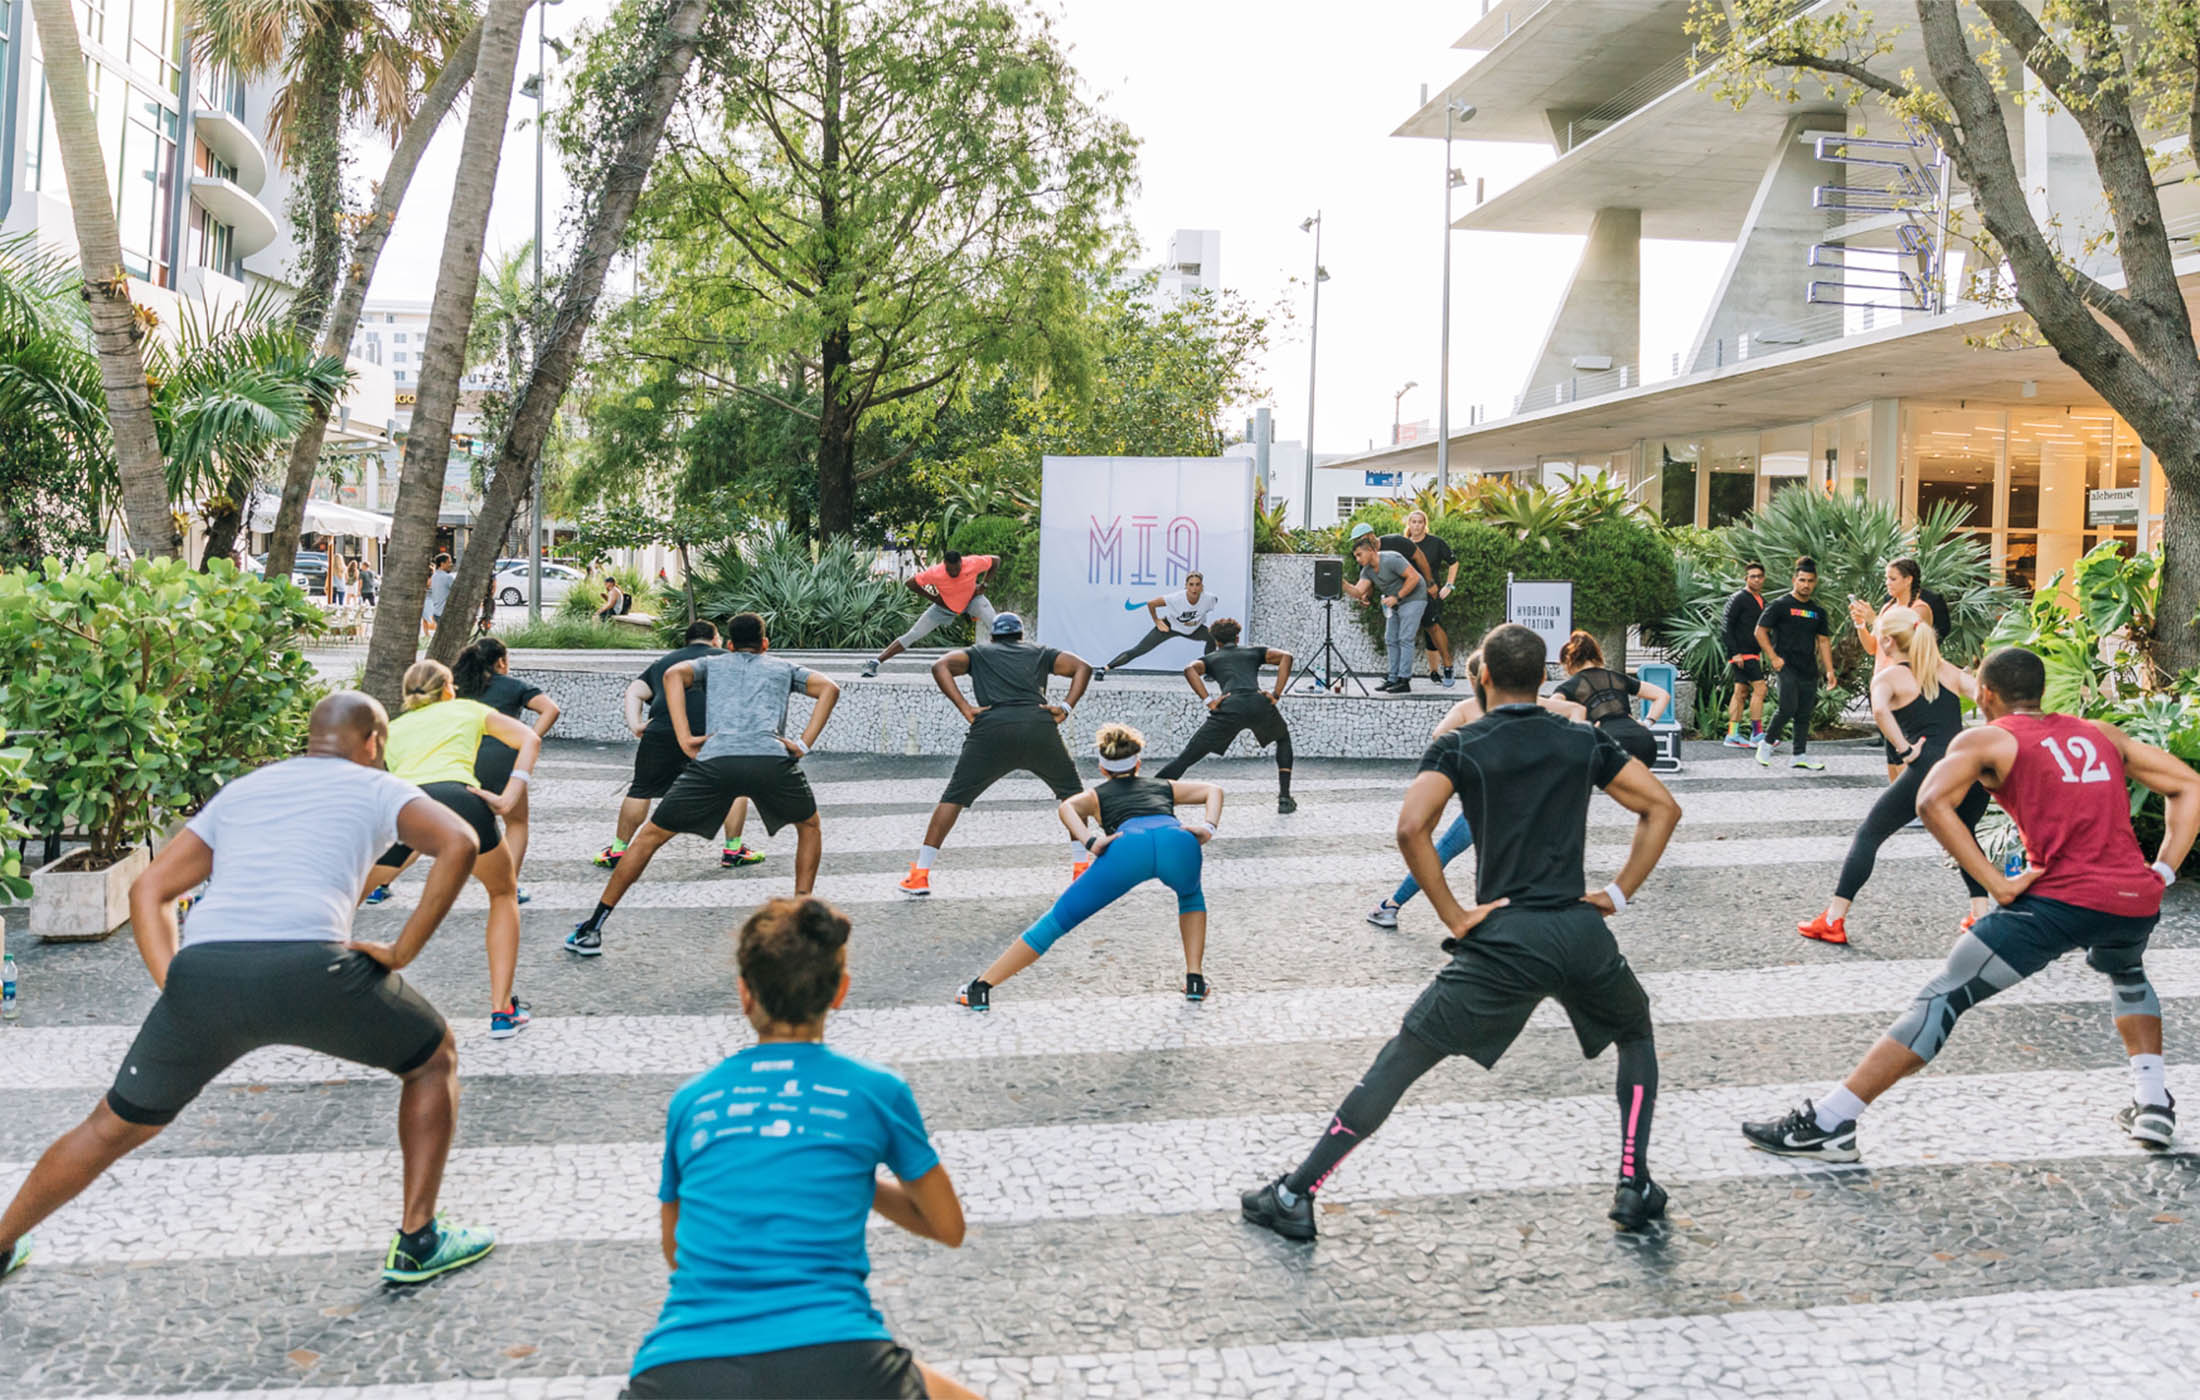 Lincoln Road BID outdoor exercise